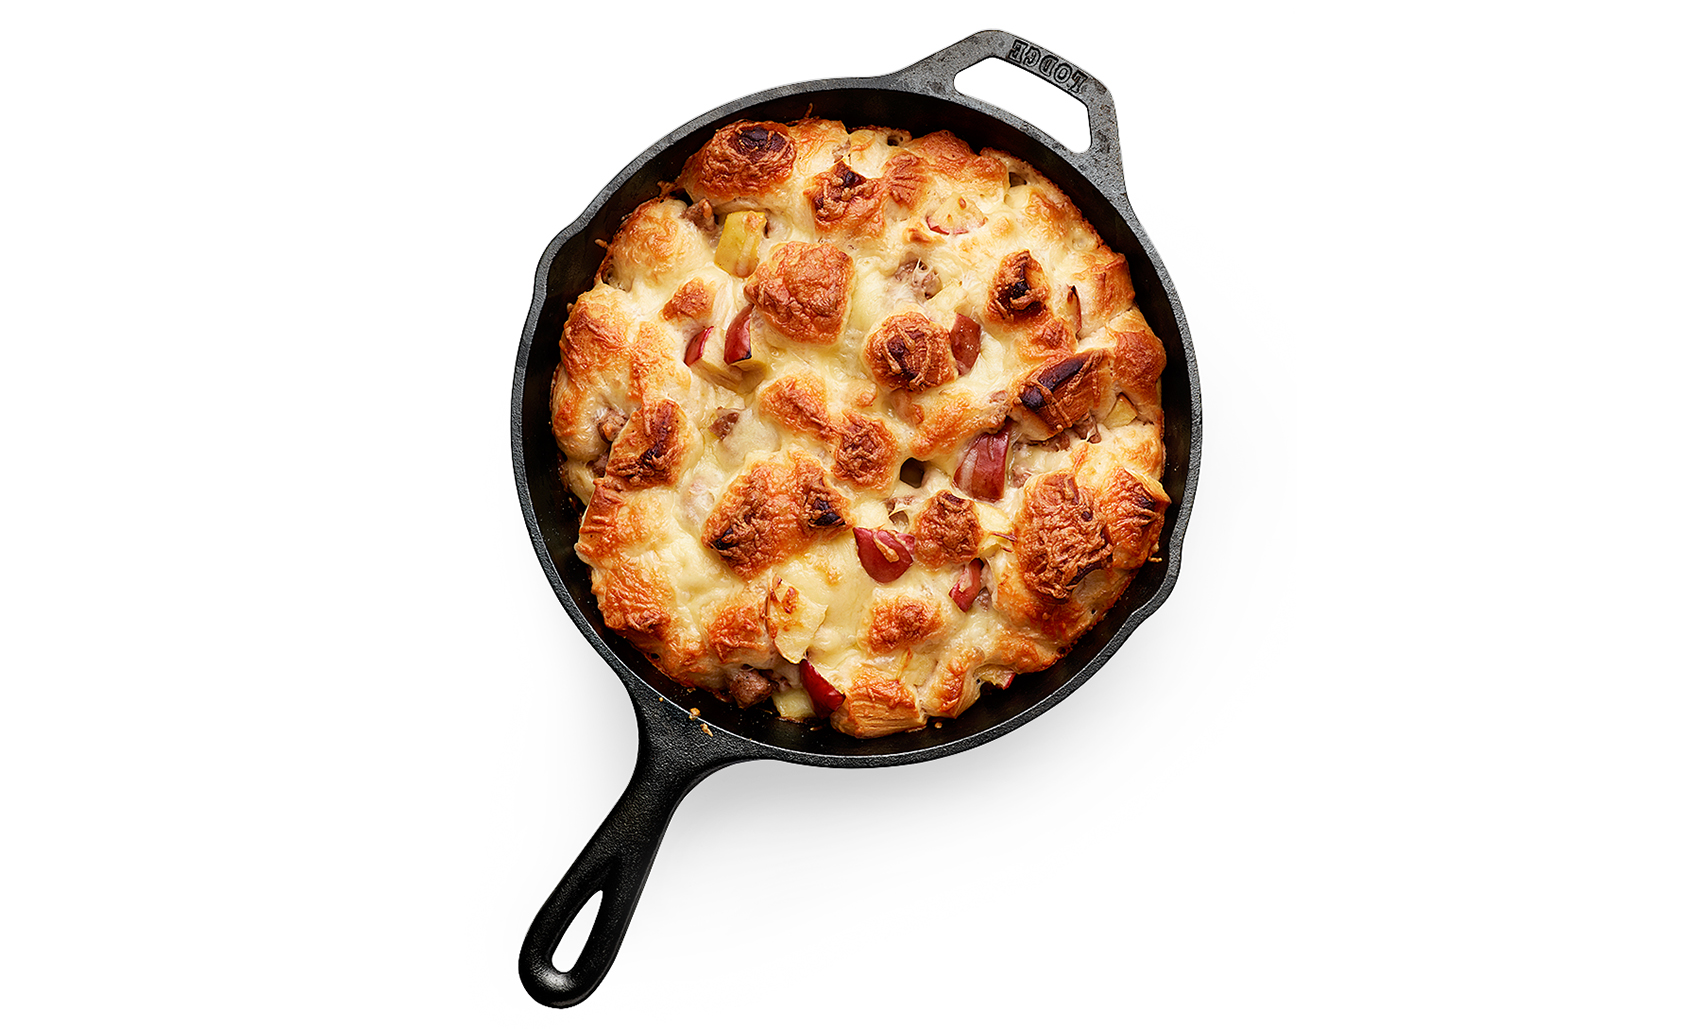 Clone of Apple, Sausage, and Cheddar Monkey Bread